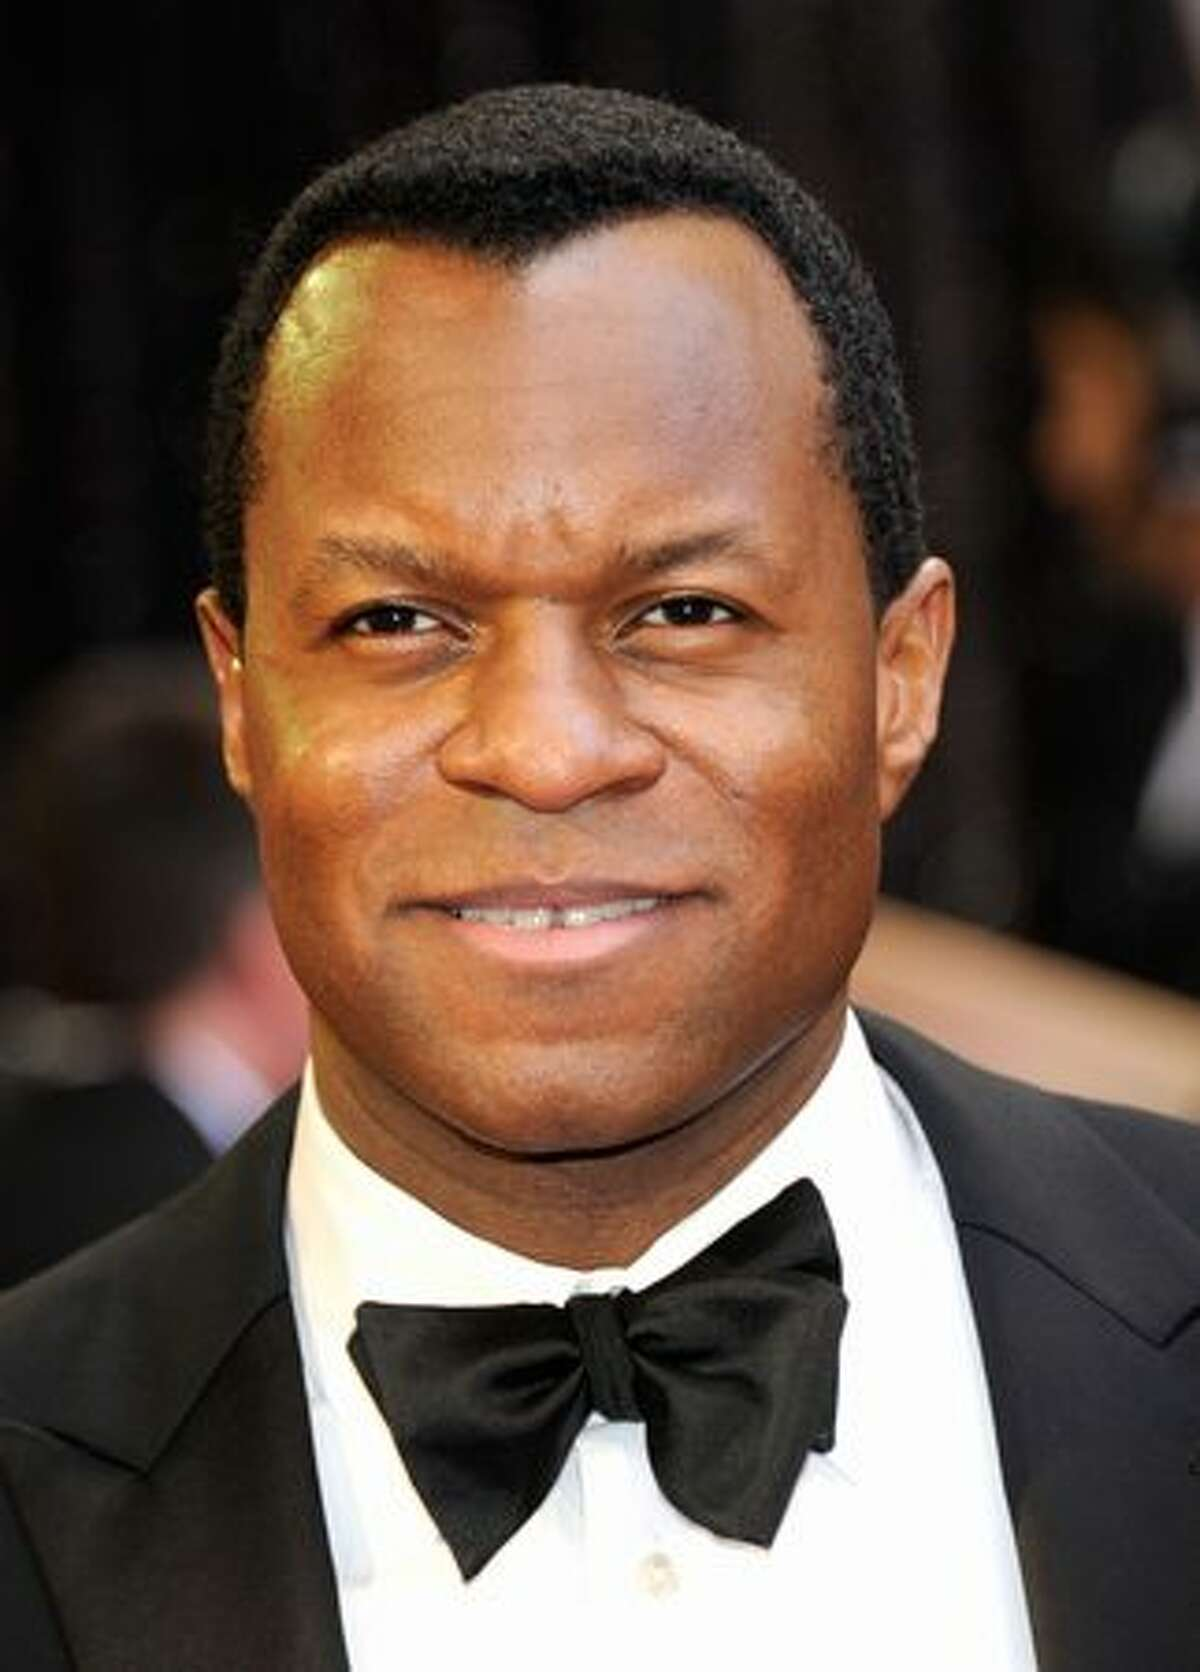 Screenwriter Geoffrey Fletcher arrives at the 83rd Annual Academy Awards held at the Kodak Theatre in Hollywood, California.